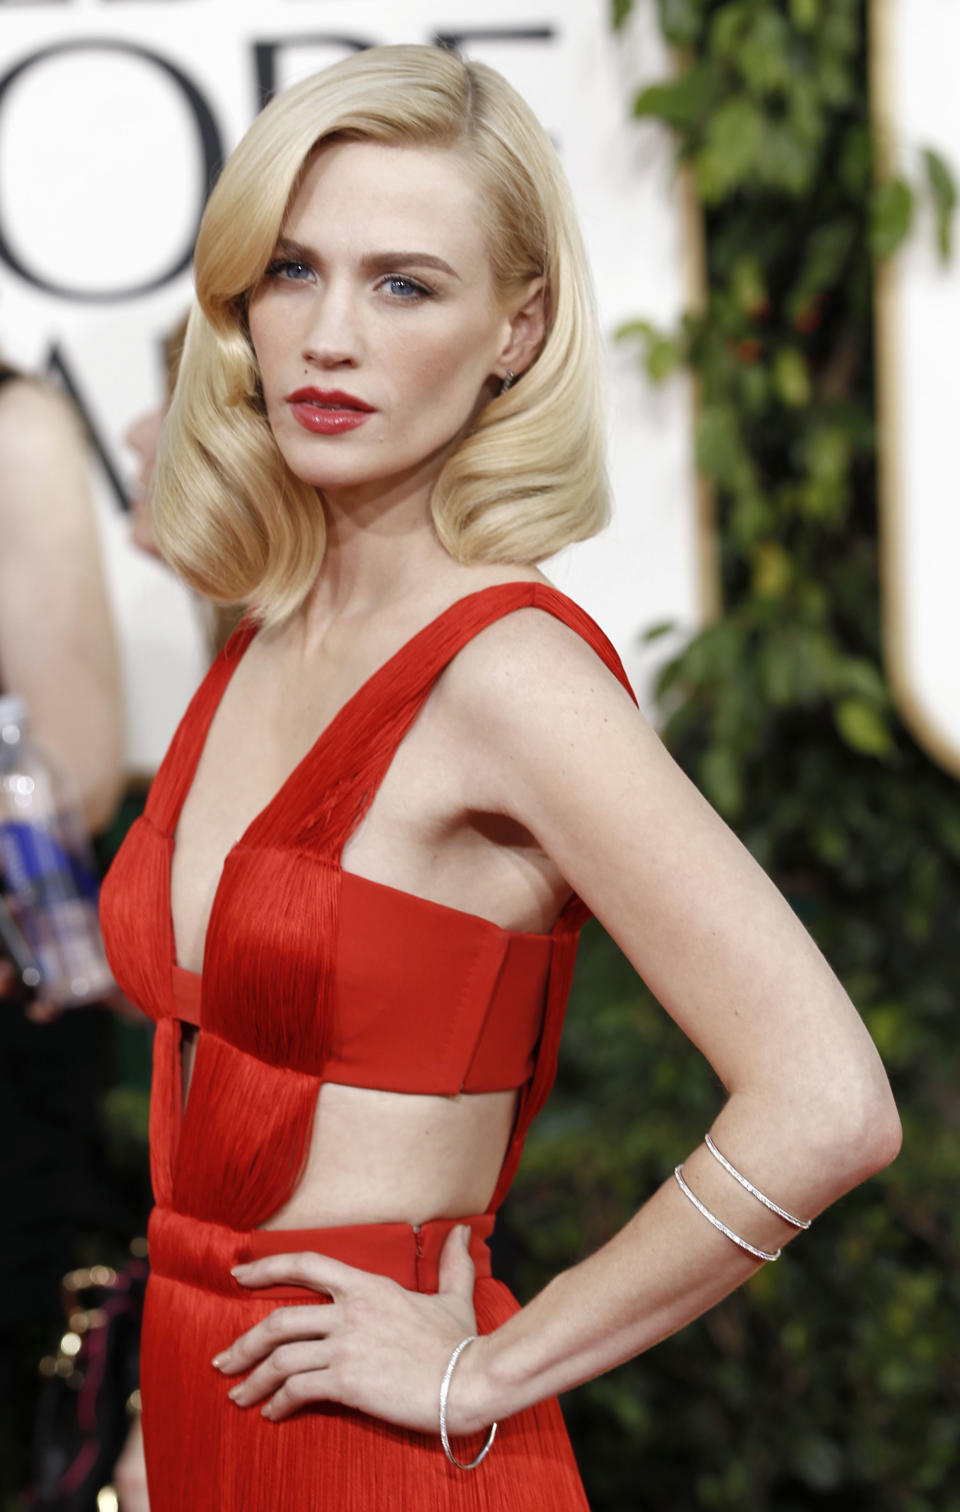 Actress January Jones arrives at the Golden Globe Awards Sunday, Jan. 16, 2011, in Beverly Hills, Calif. (AP Photo/Matt Sayles)